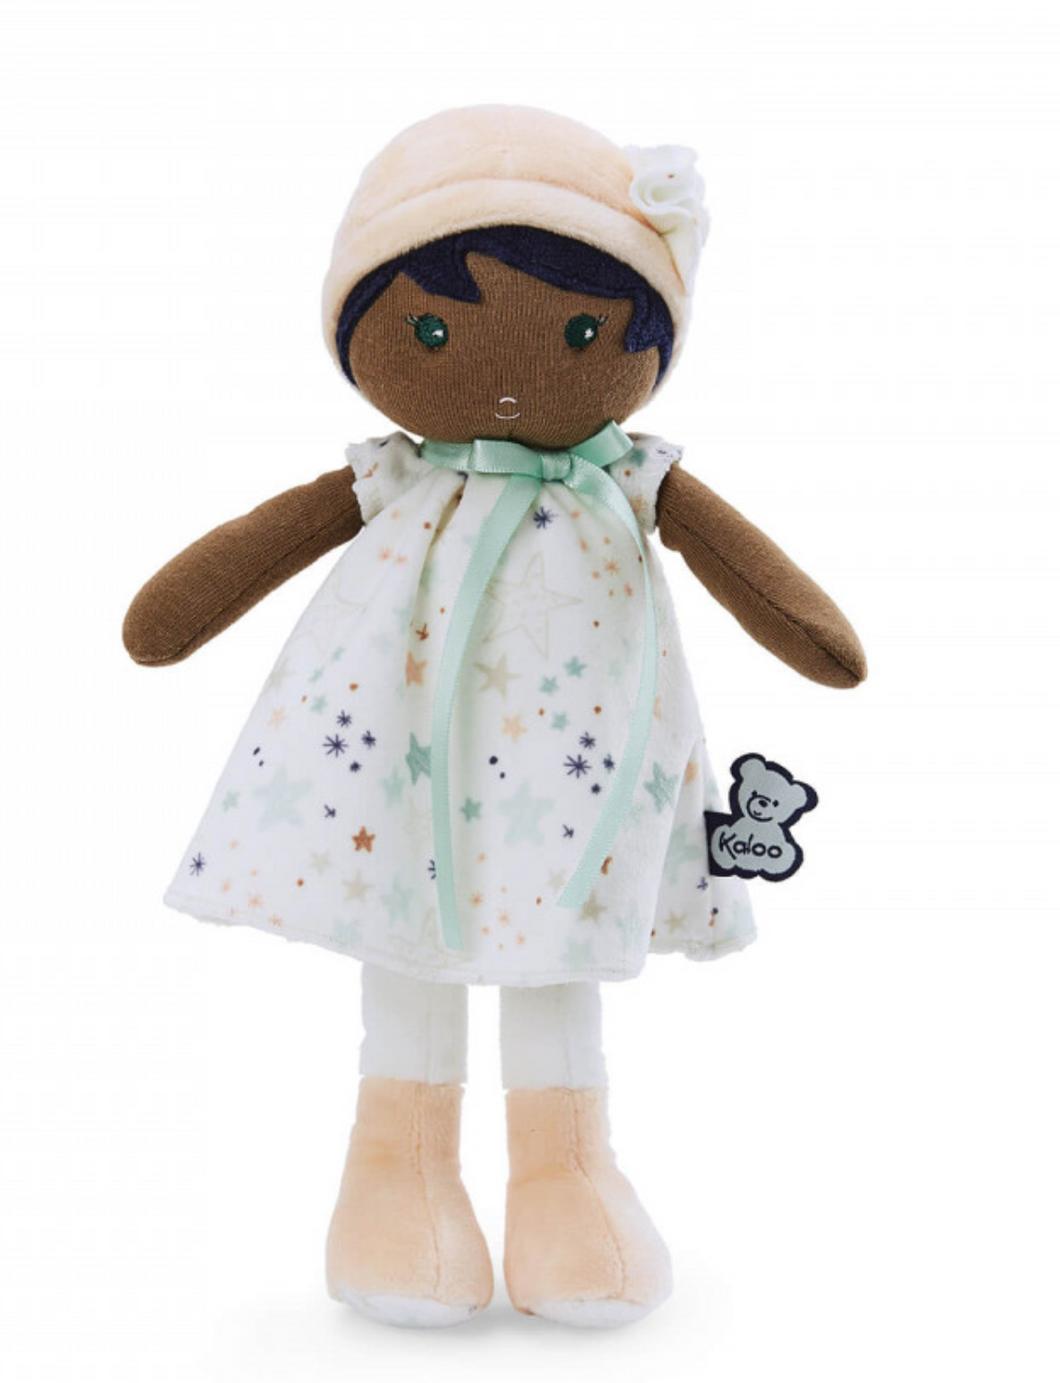 Tendresse Manon K (Size Large)